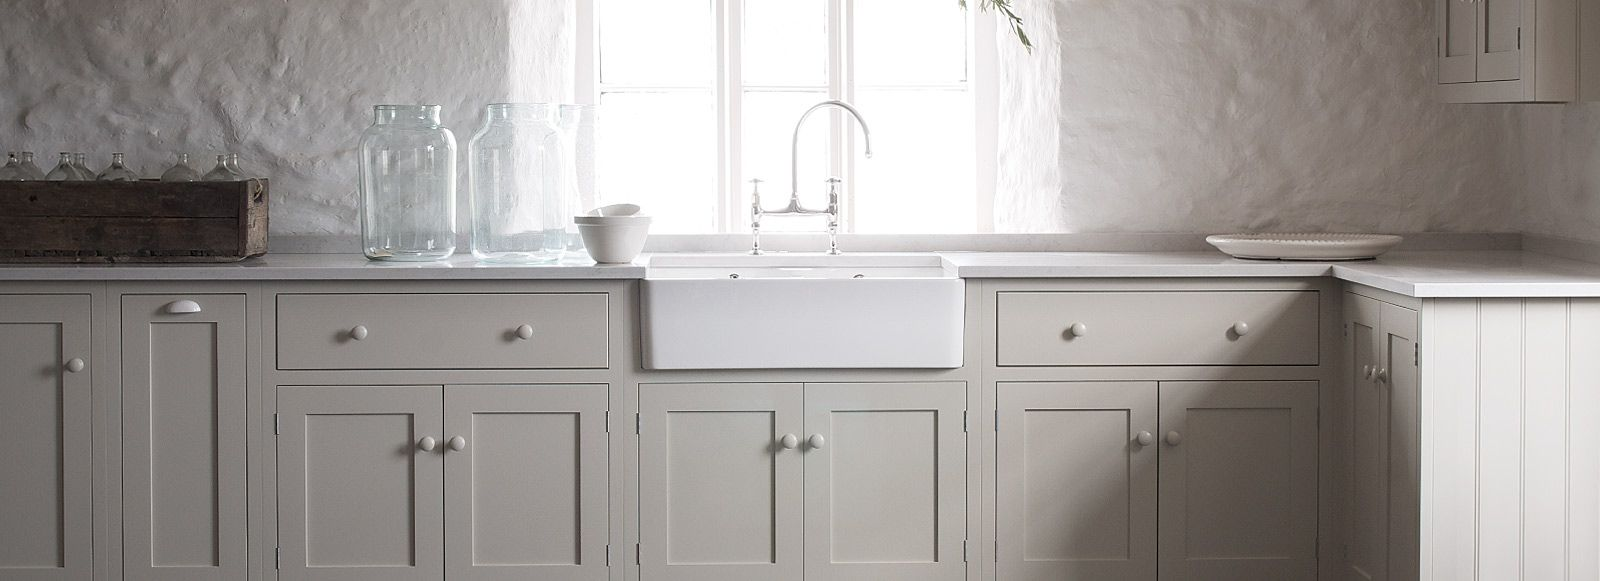 Devol kitchens simple furniture beautifully made for Handmade kitchens